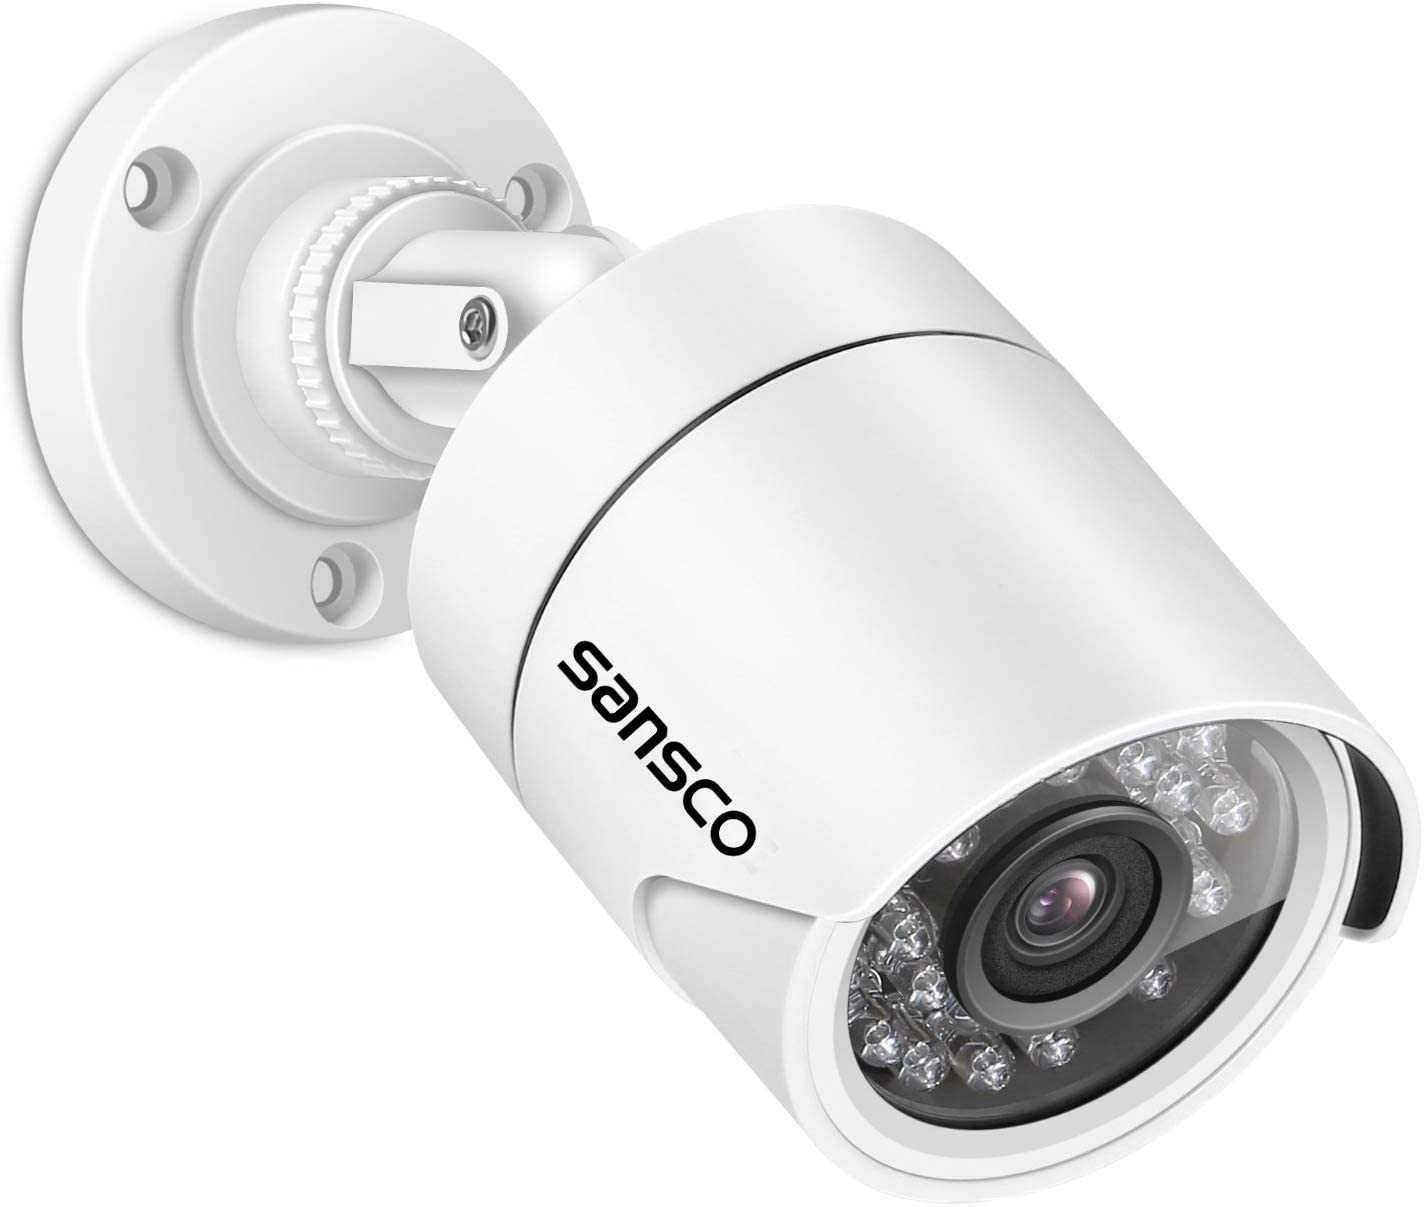 720p AHD CCTV wired HD camera outdoor security waterproof WIDE ANGLE  lens